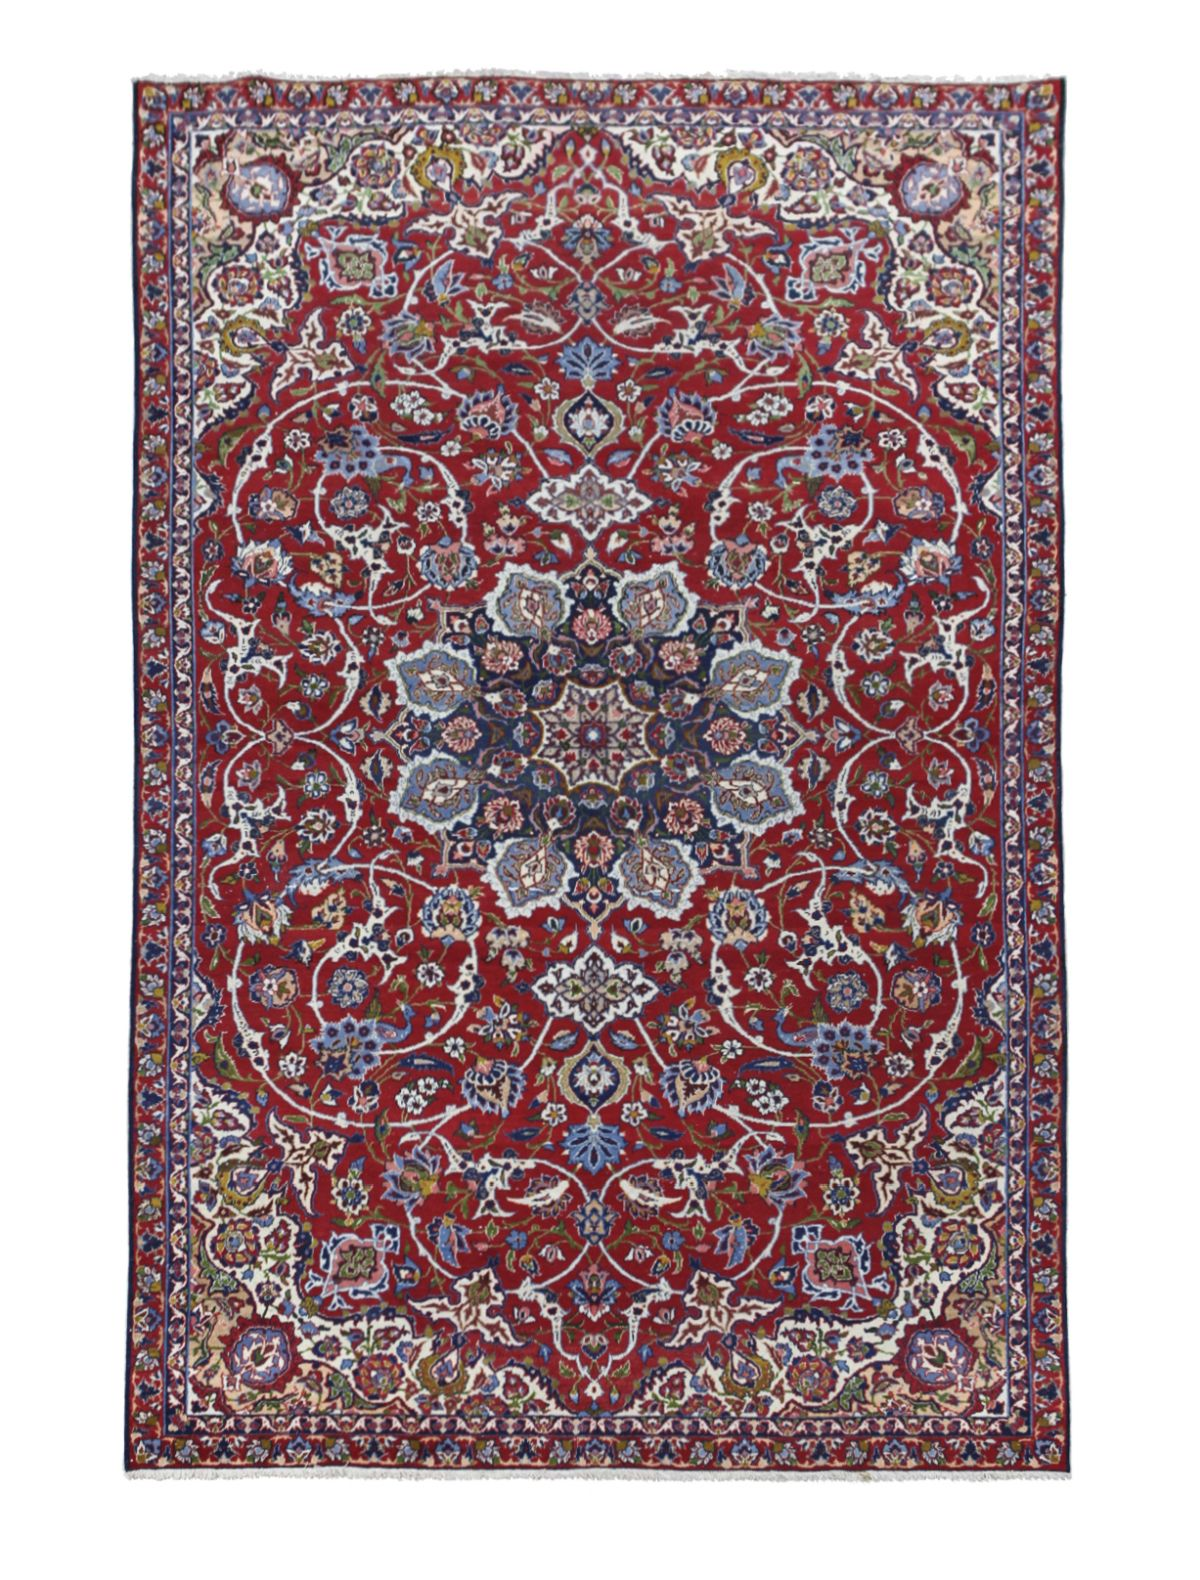 #176 Isfahan wool carpet 1920-1930 | Isfahan Woll-Teppich, 1920-1930 Image